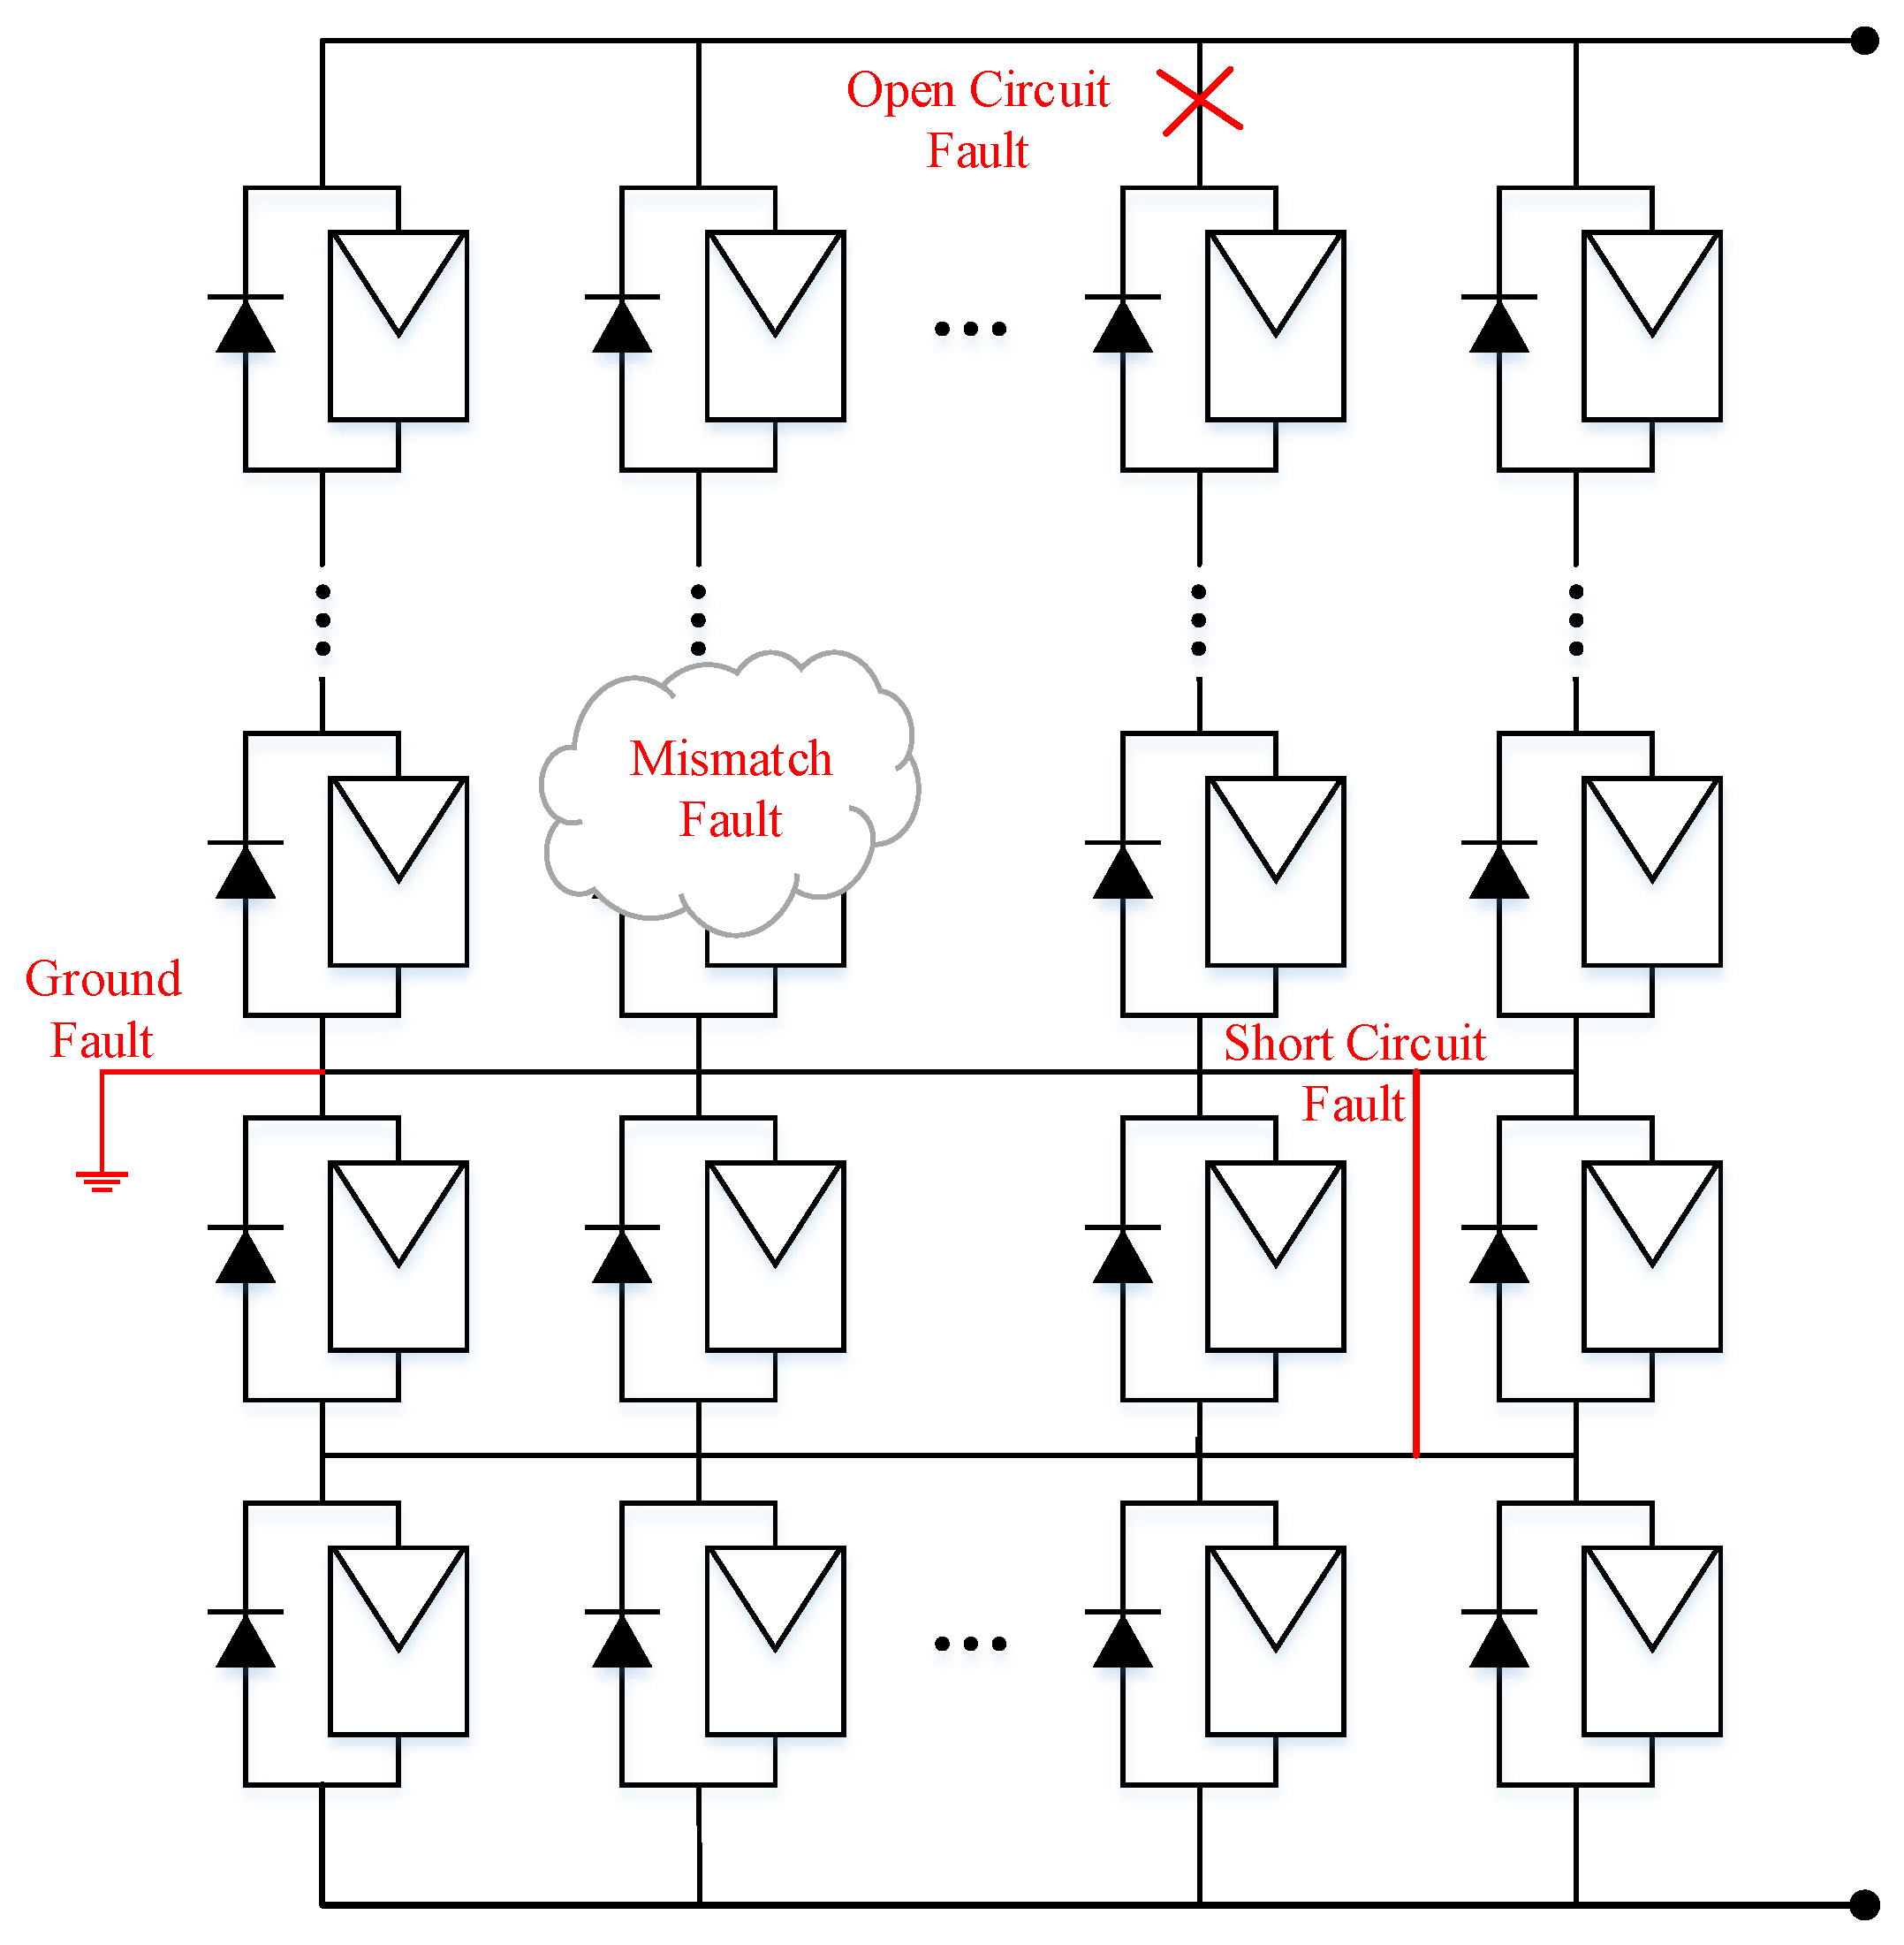 Energies Free Full Text Photovoltaic Array Fault Detection By Grid With Solar Panel Bypass Schematic 10 00699 G001